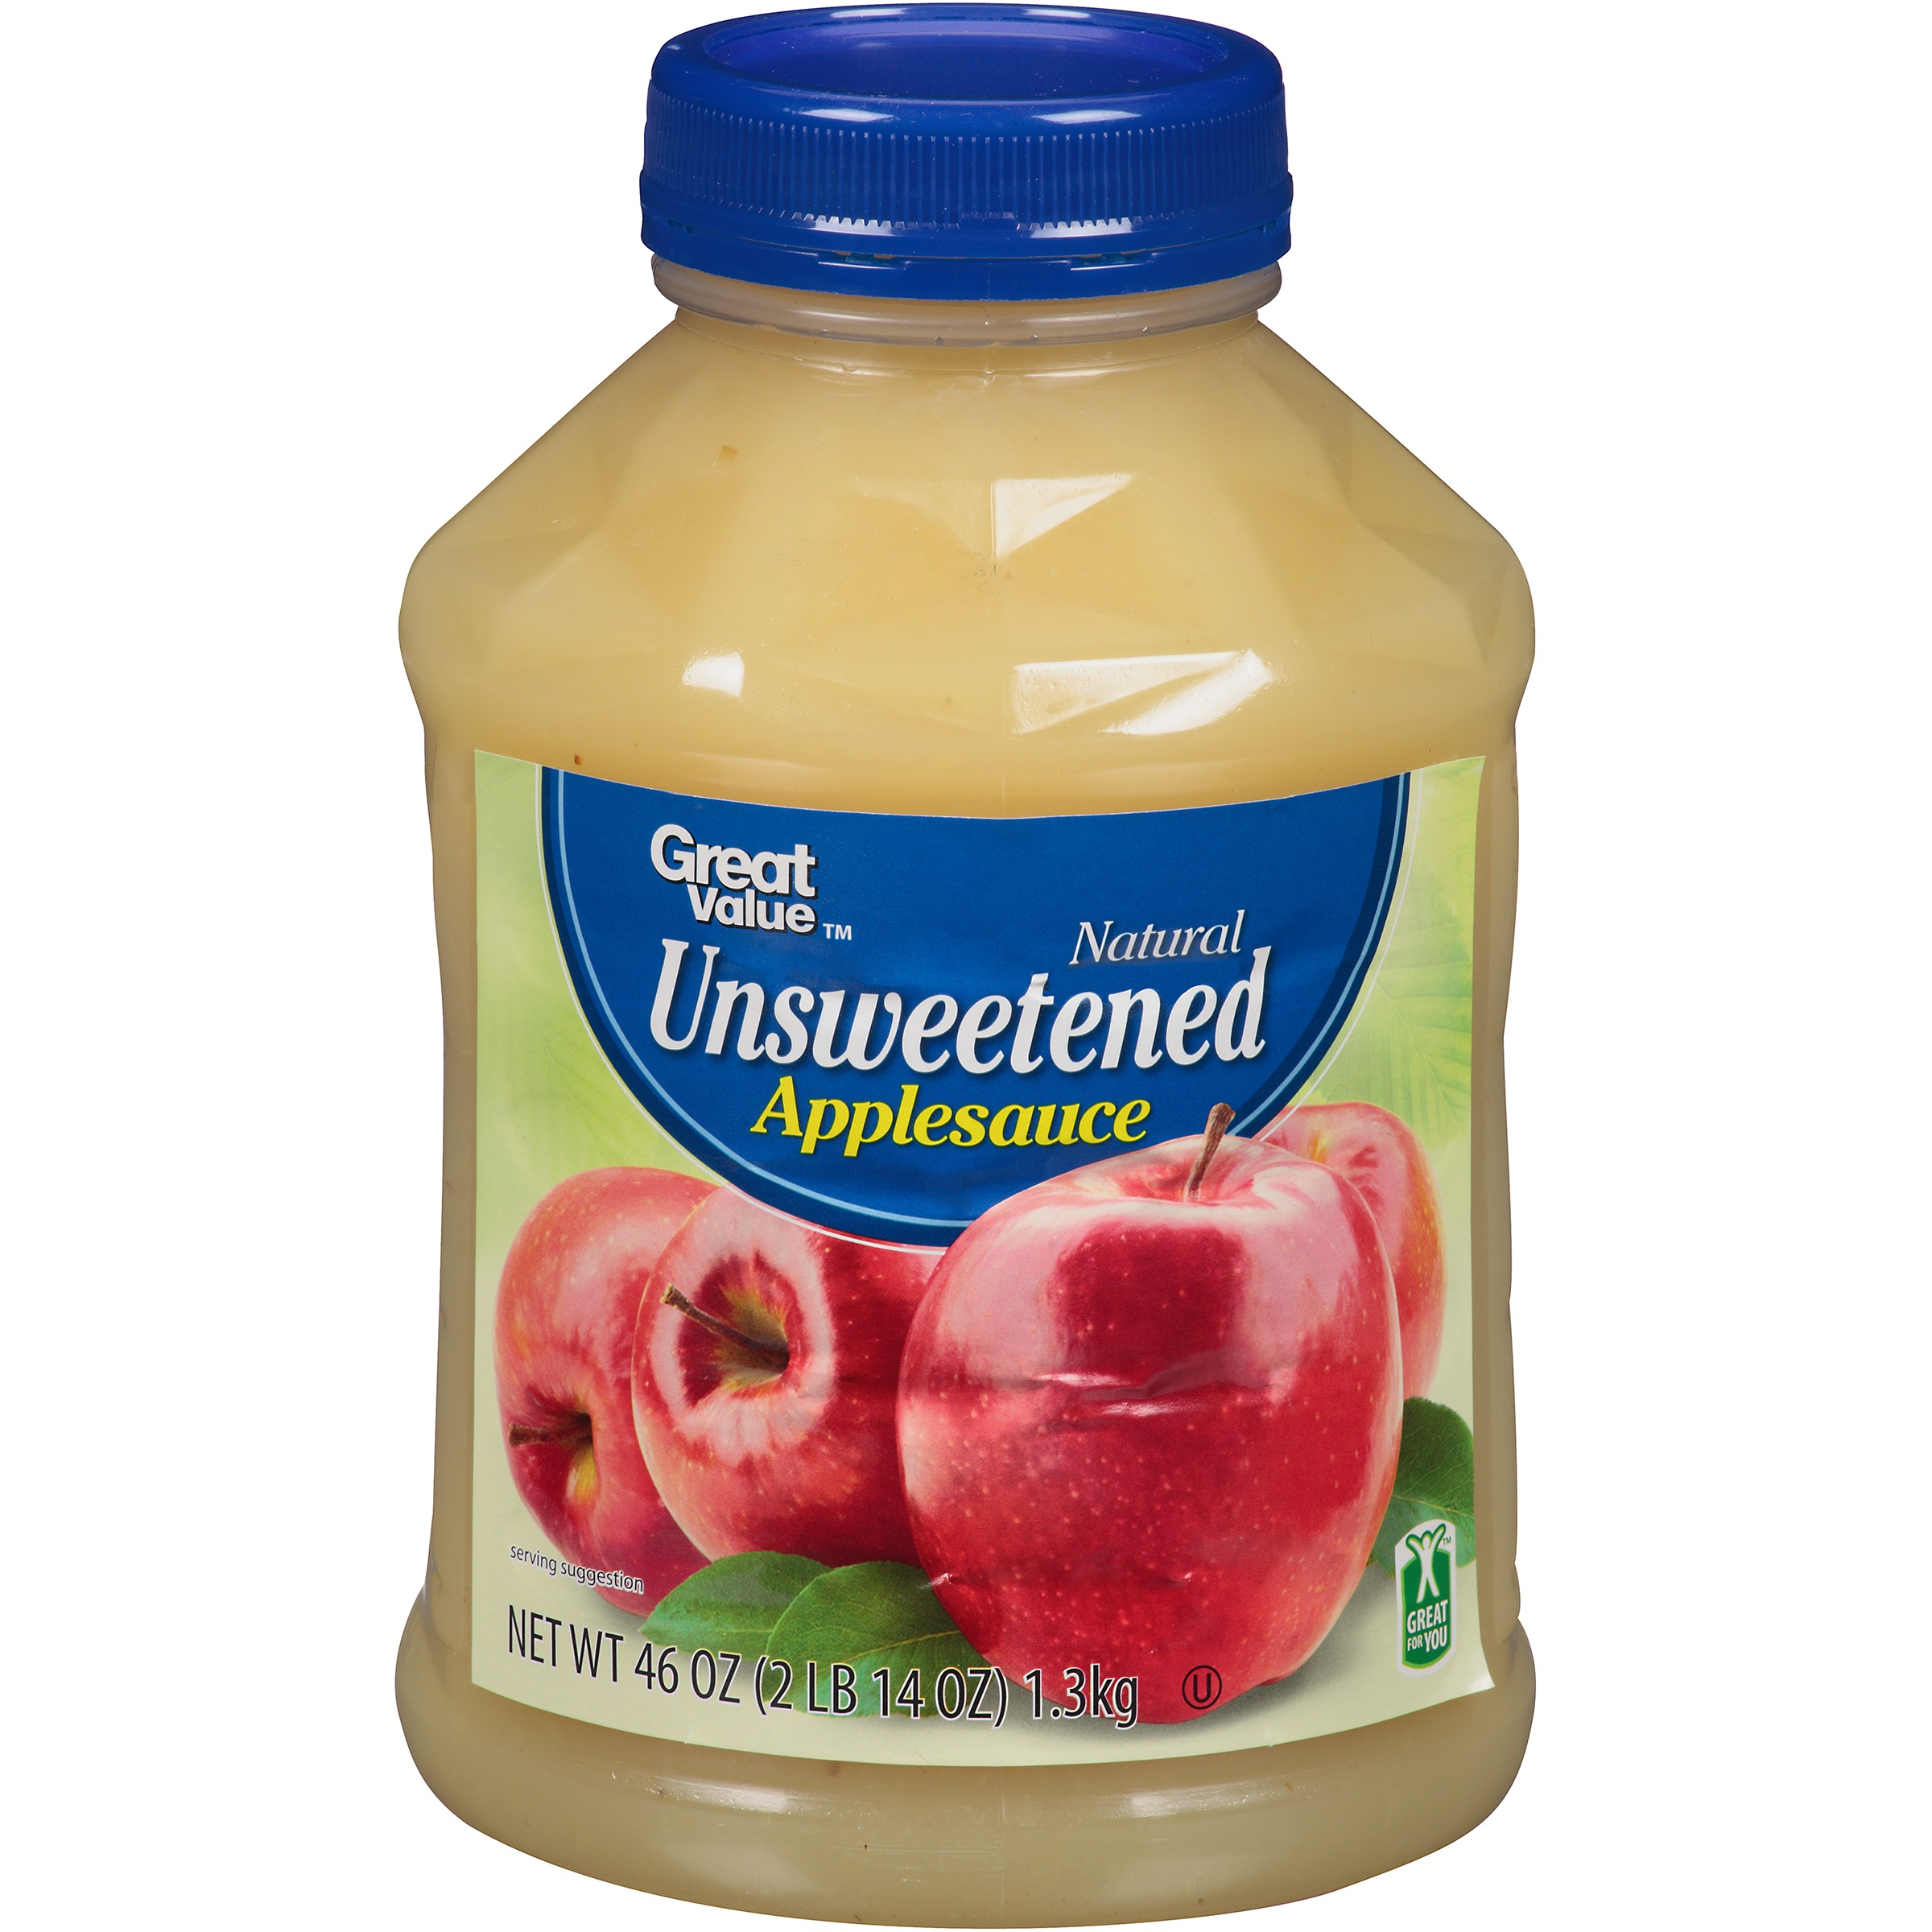 Great Value Unsweetened Applesauce, 46 oz by Walmart Stores, Inc